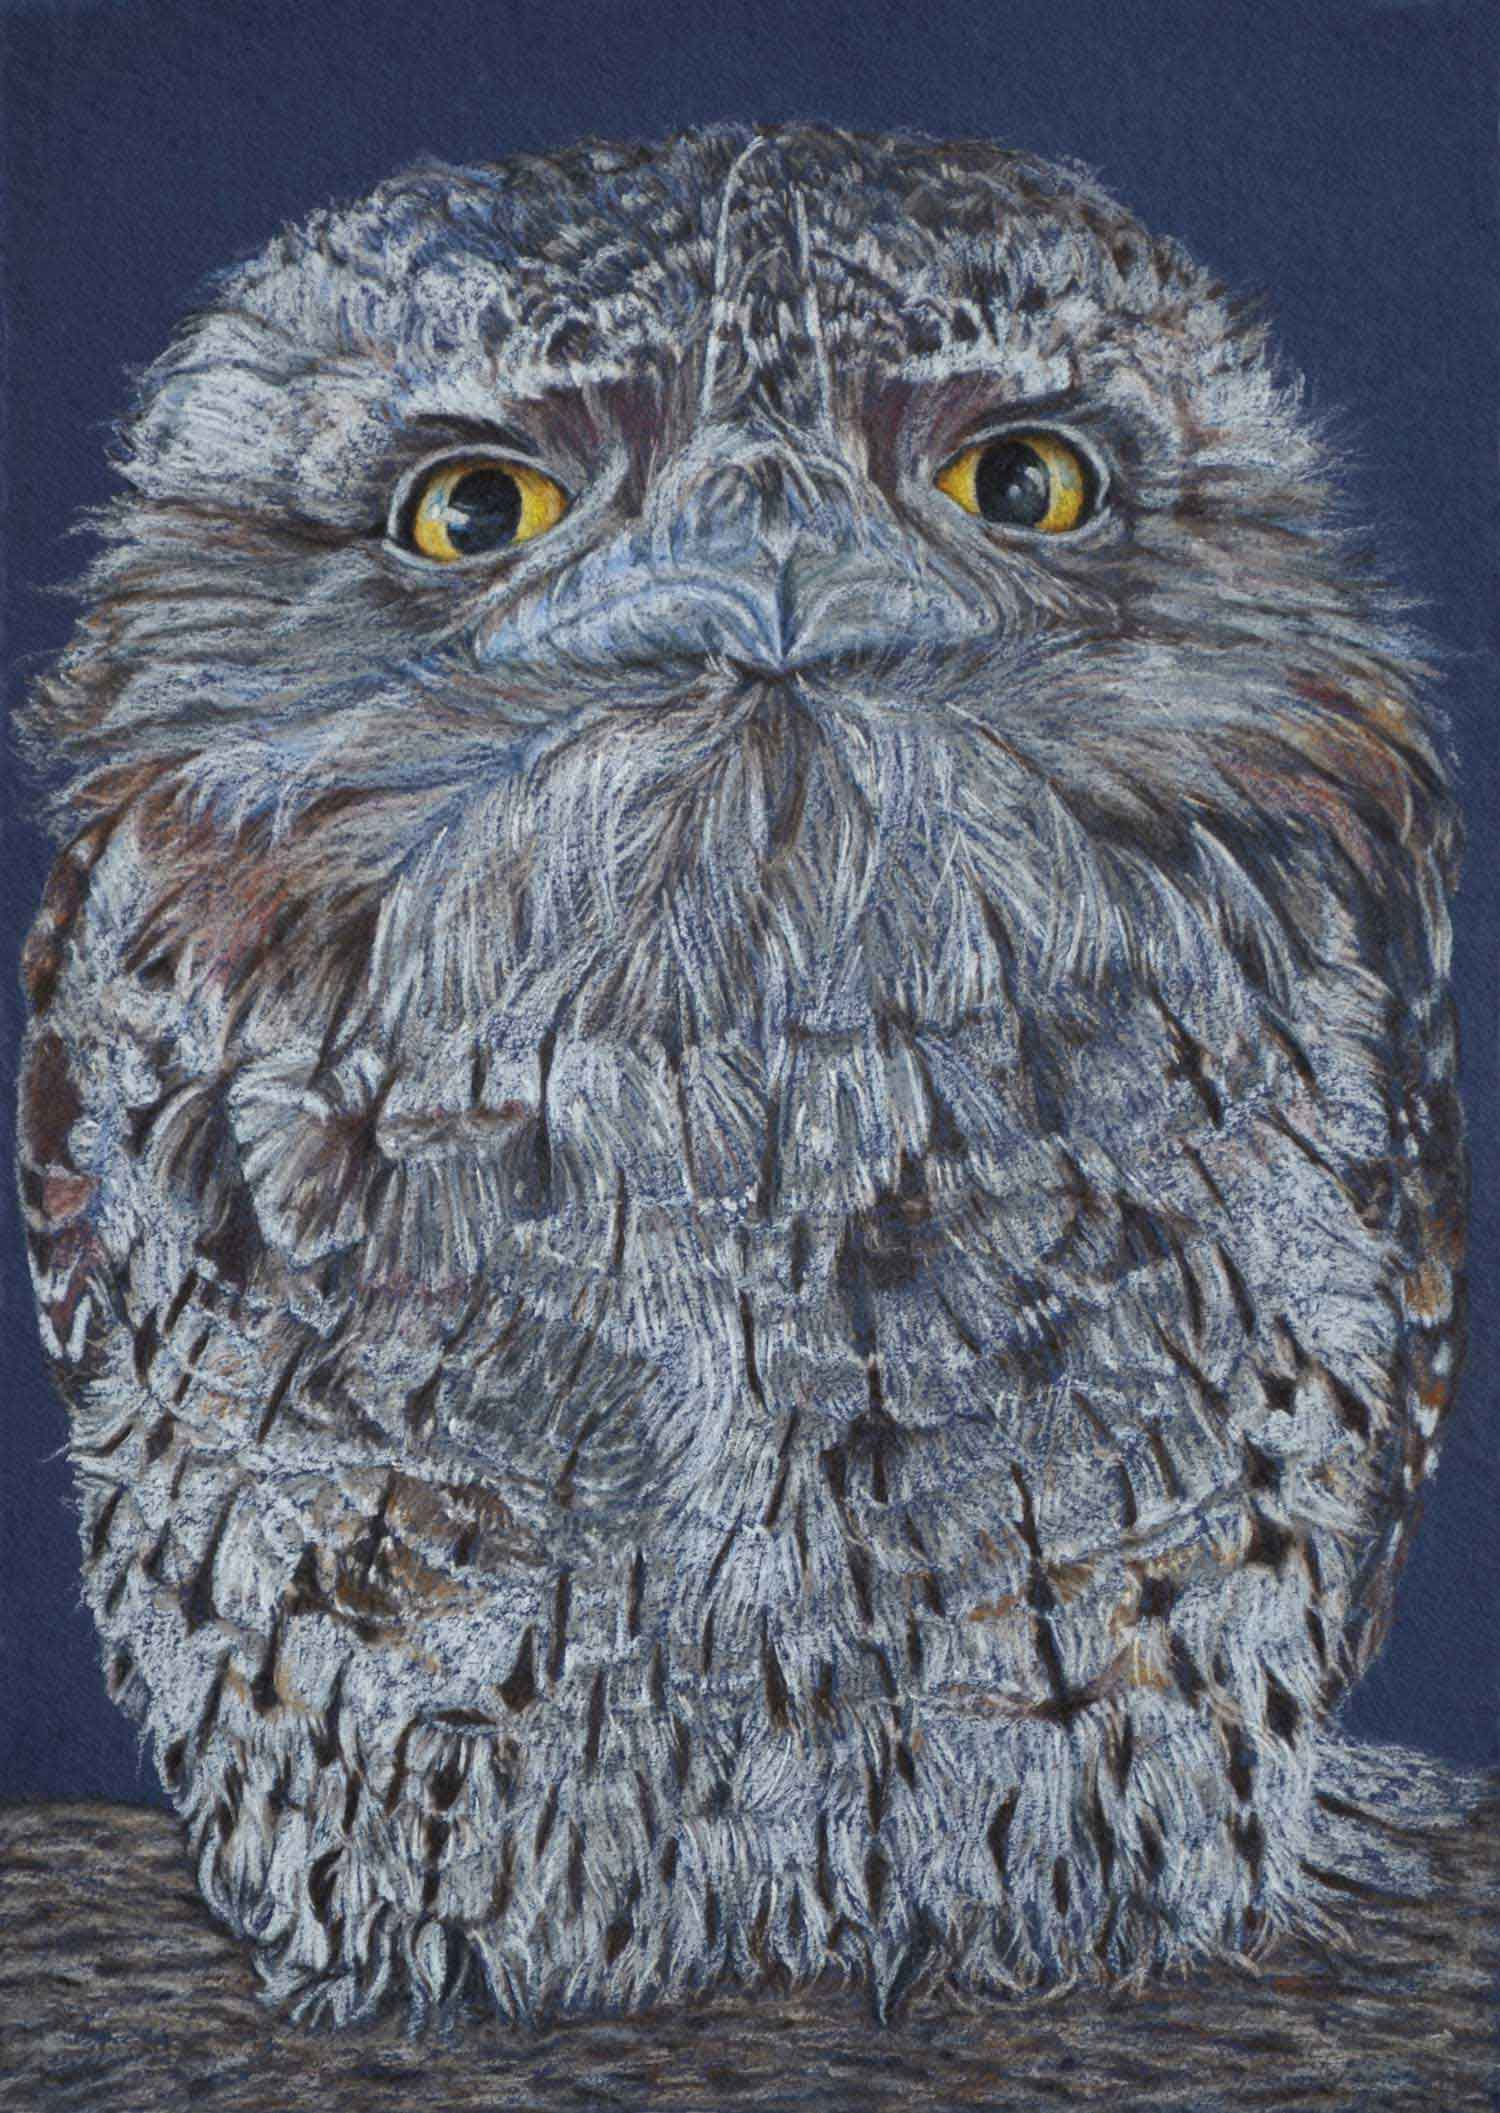 Tawny Frogmouth II 30 x 21 cm  Pastel on handmade paper  SOLD